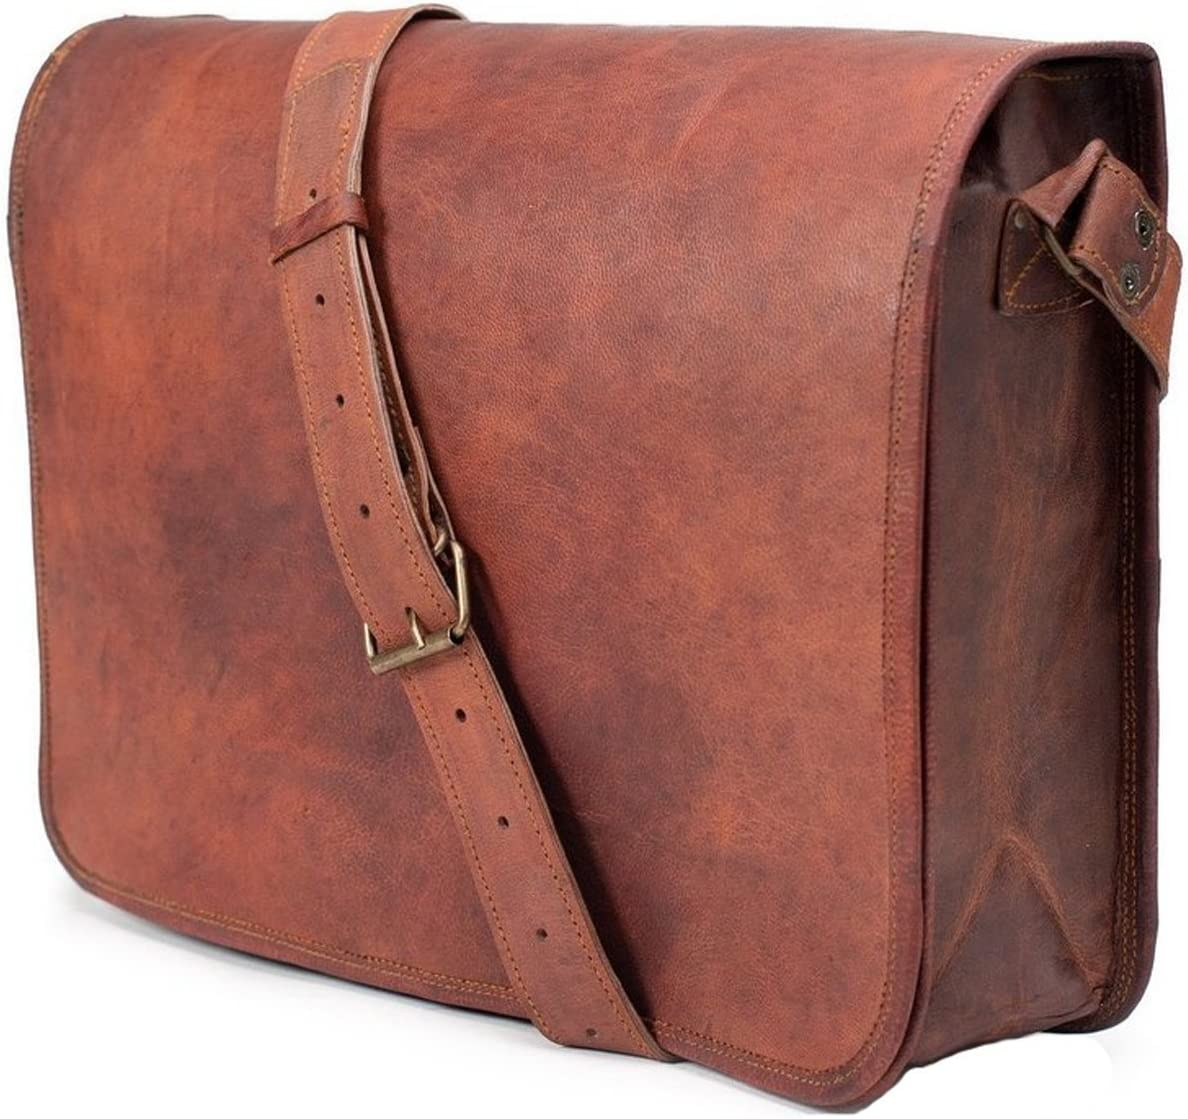 Cool large shoulder purse for men Unisex crossbody messenger bag gift present for him distressed leather and tweed with outer pocket